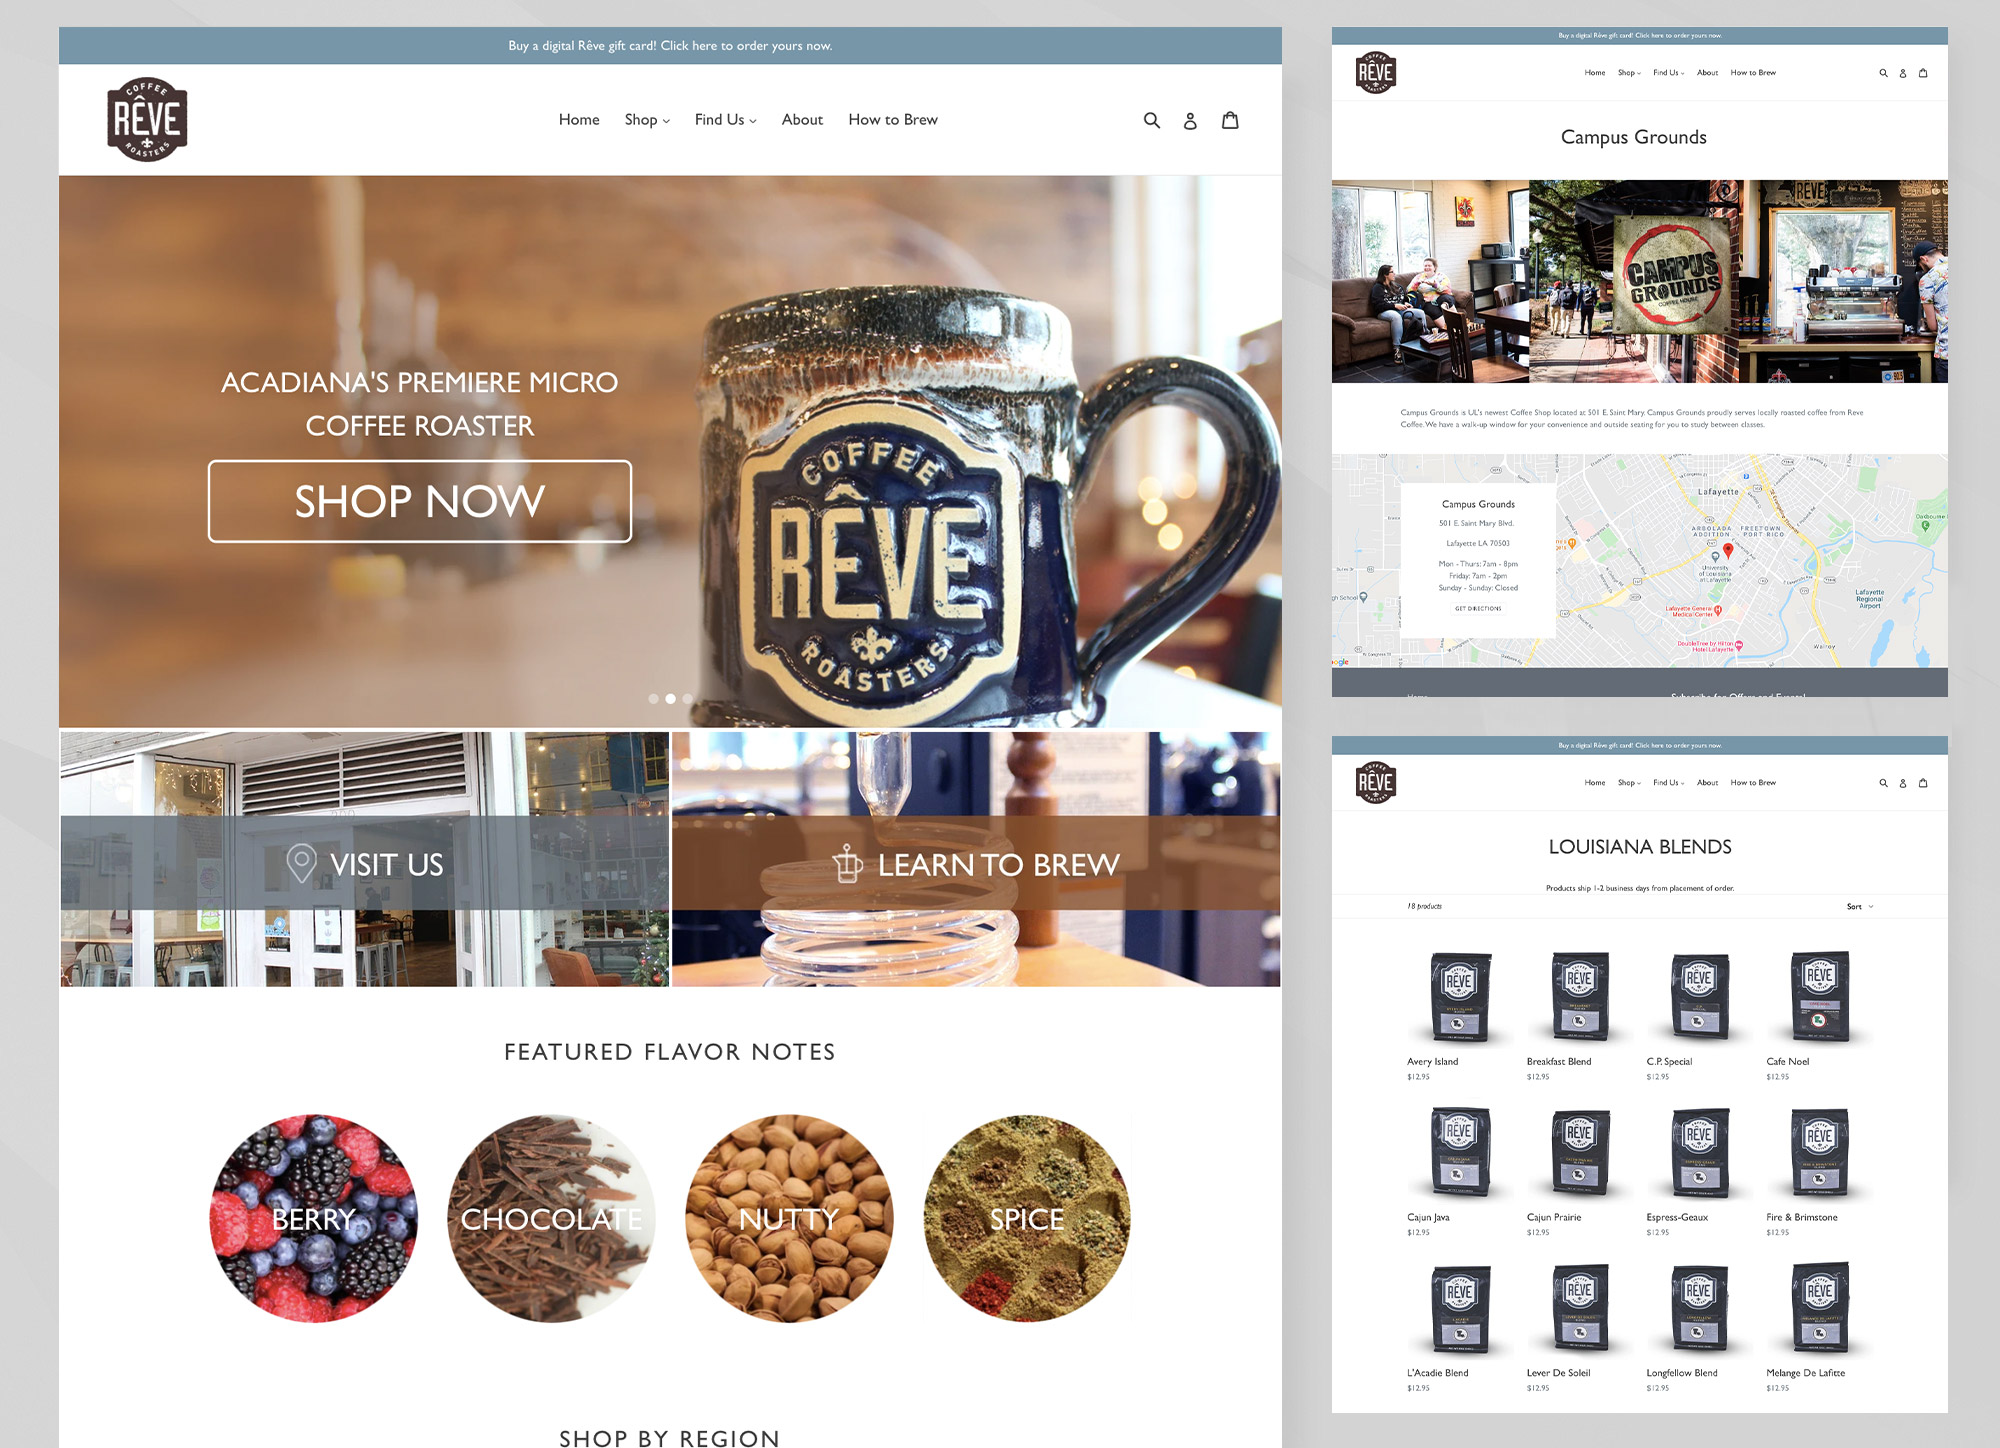 Website Design Reve Coffee